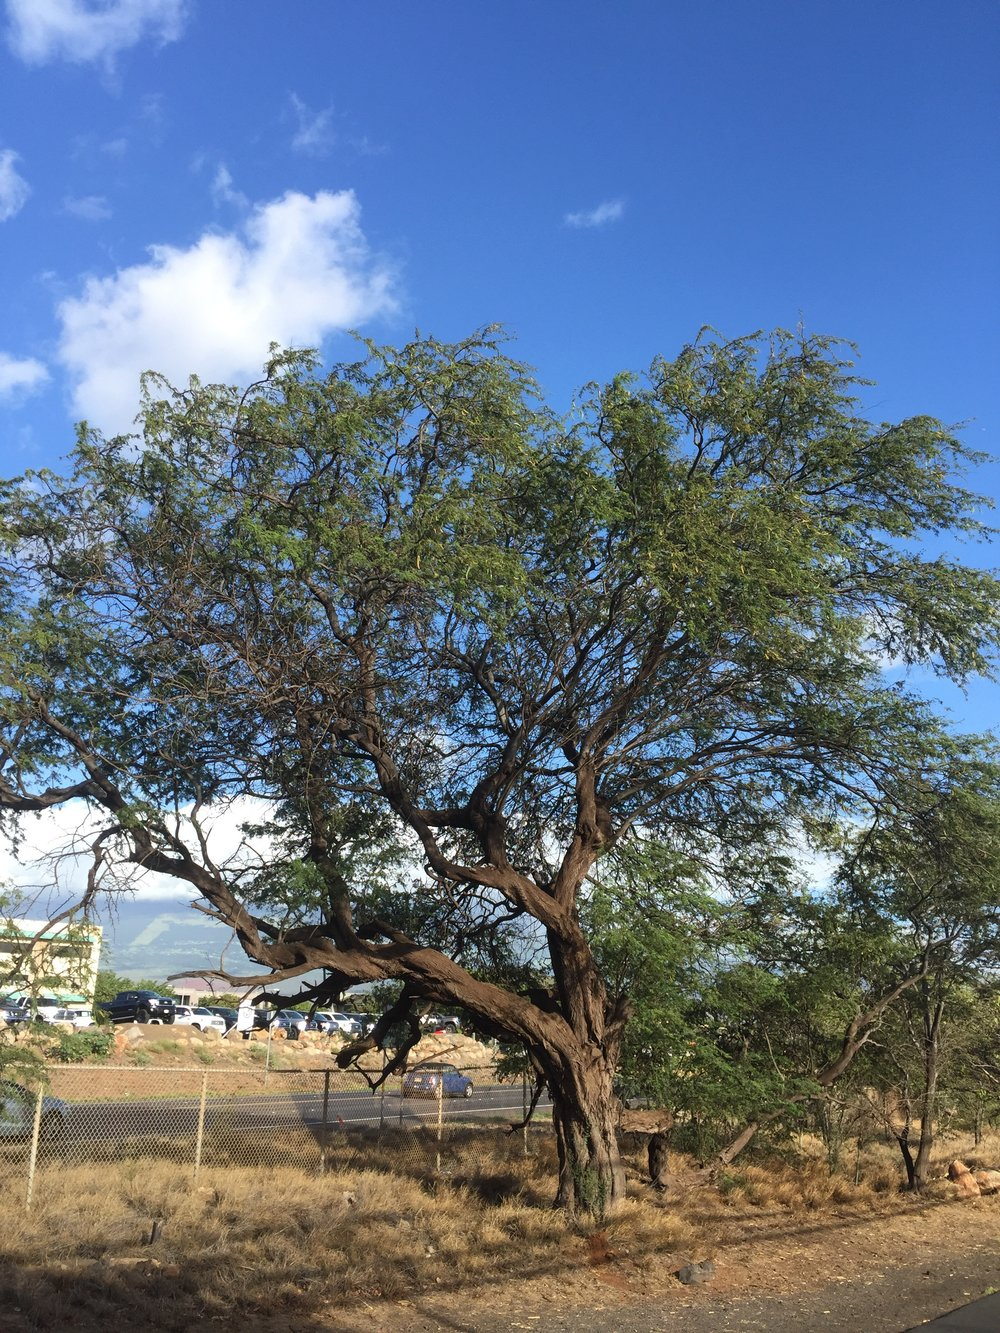 This is one of my favorite Kiawe trees that I pass every day. I love the way it has one long branch that is like an arm.